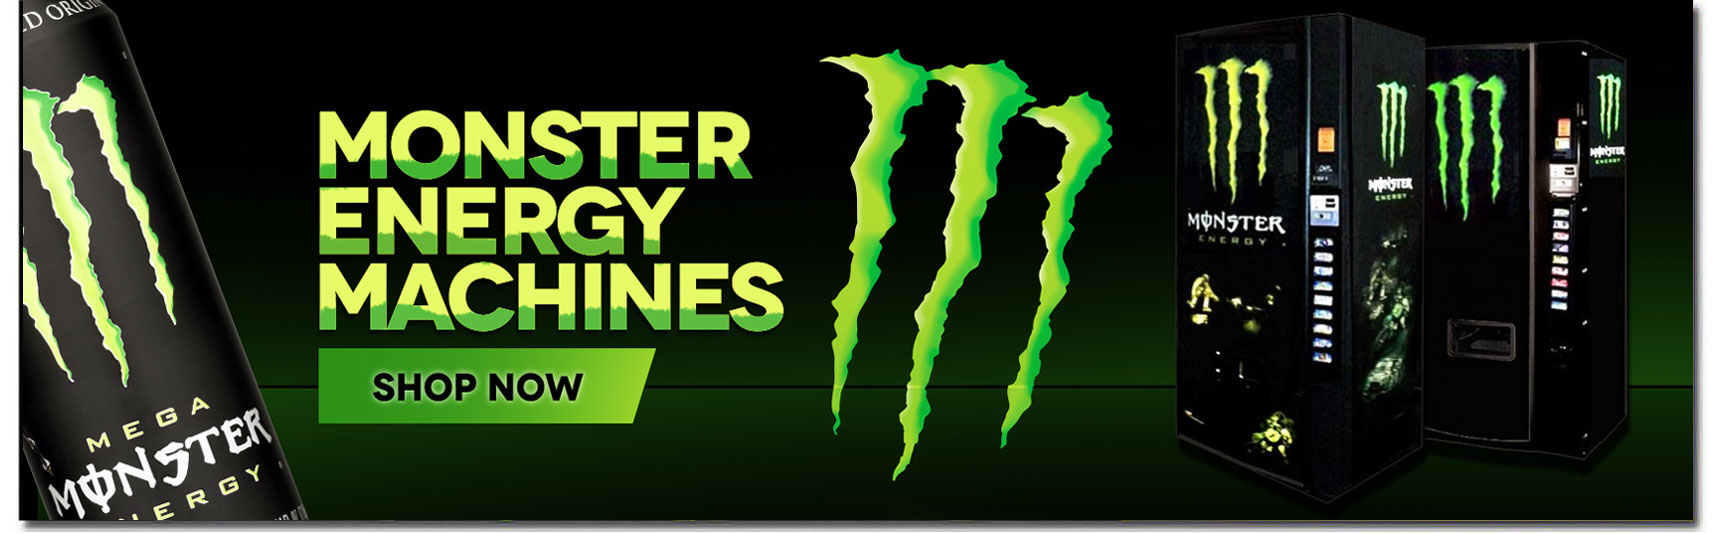 Monster Energy Machines